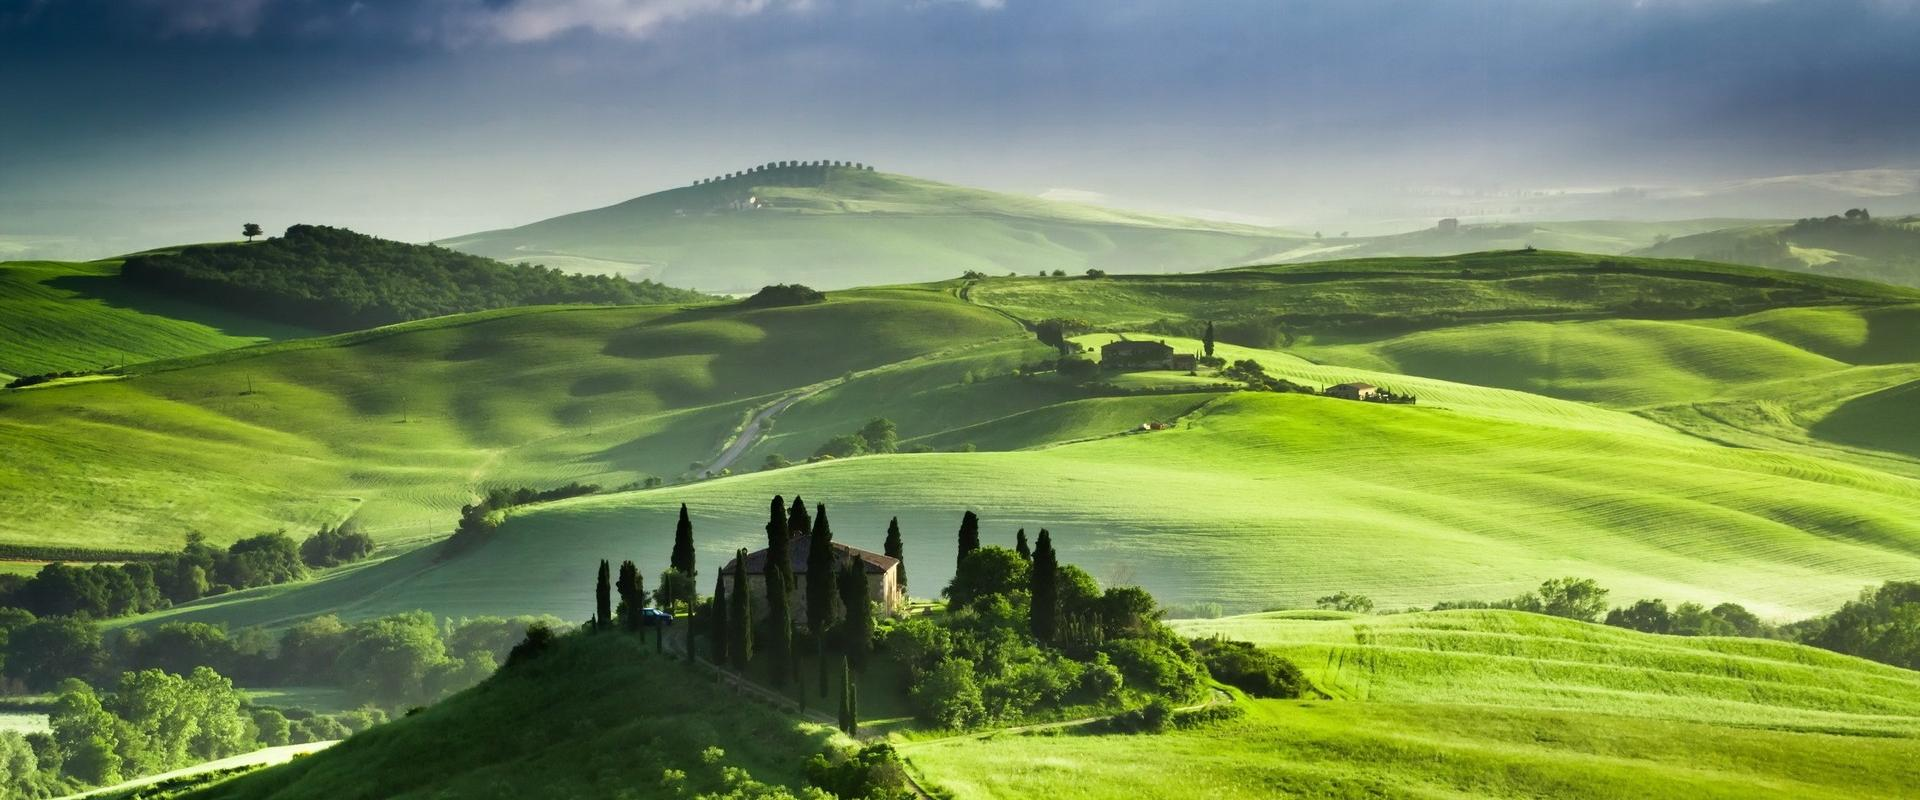 Tour Tuscany Wonders & Jewels of Chianti-shire!